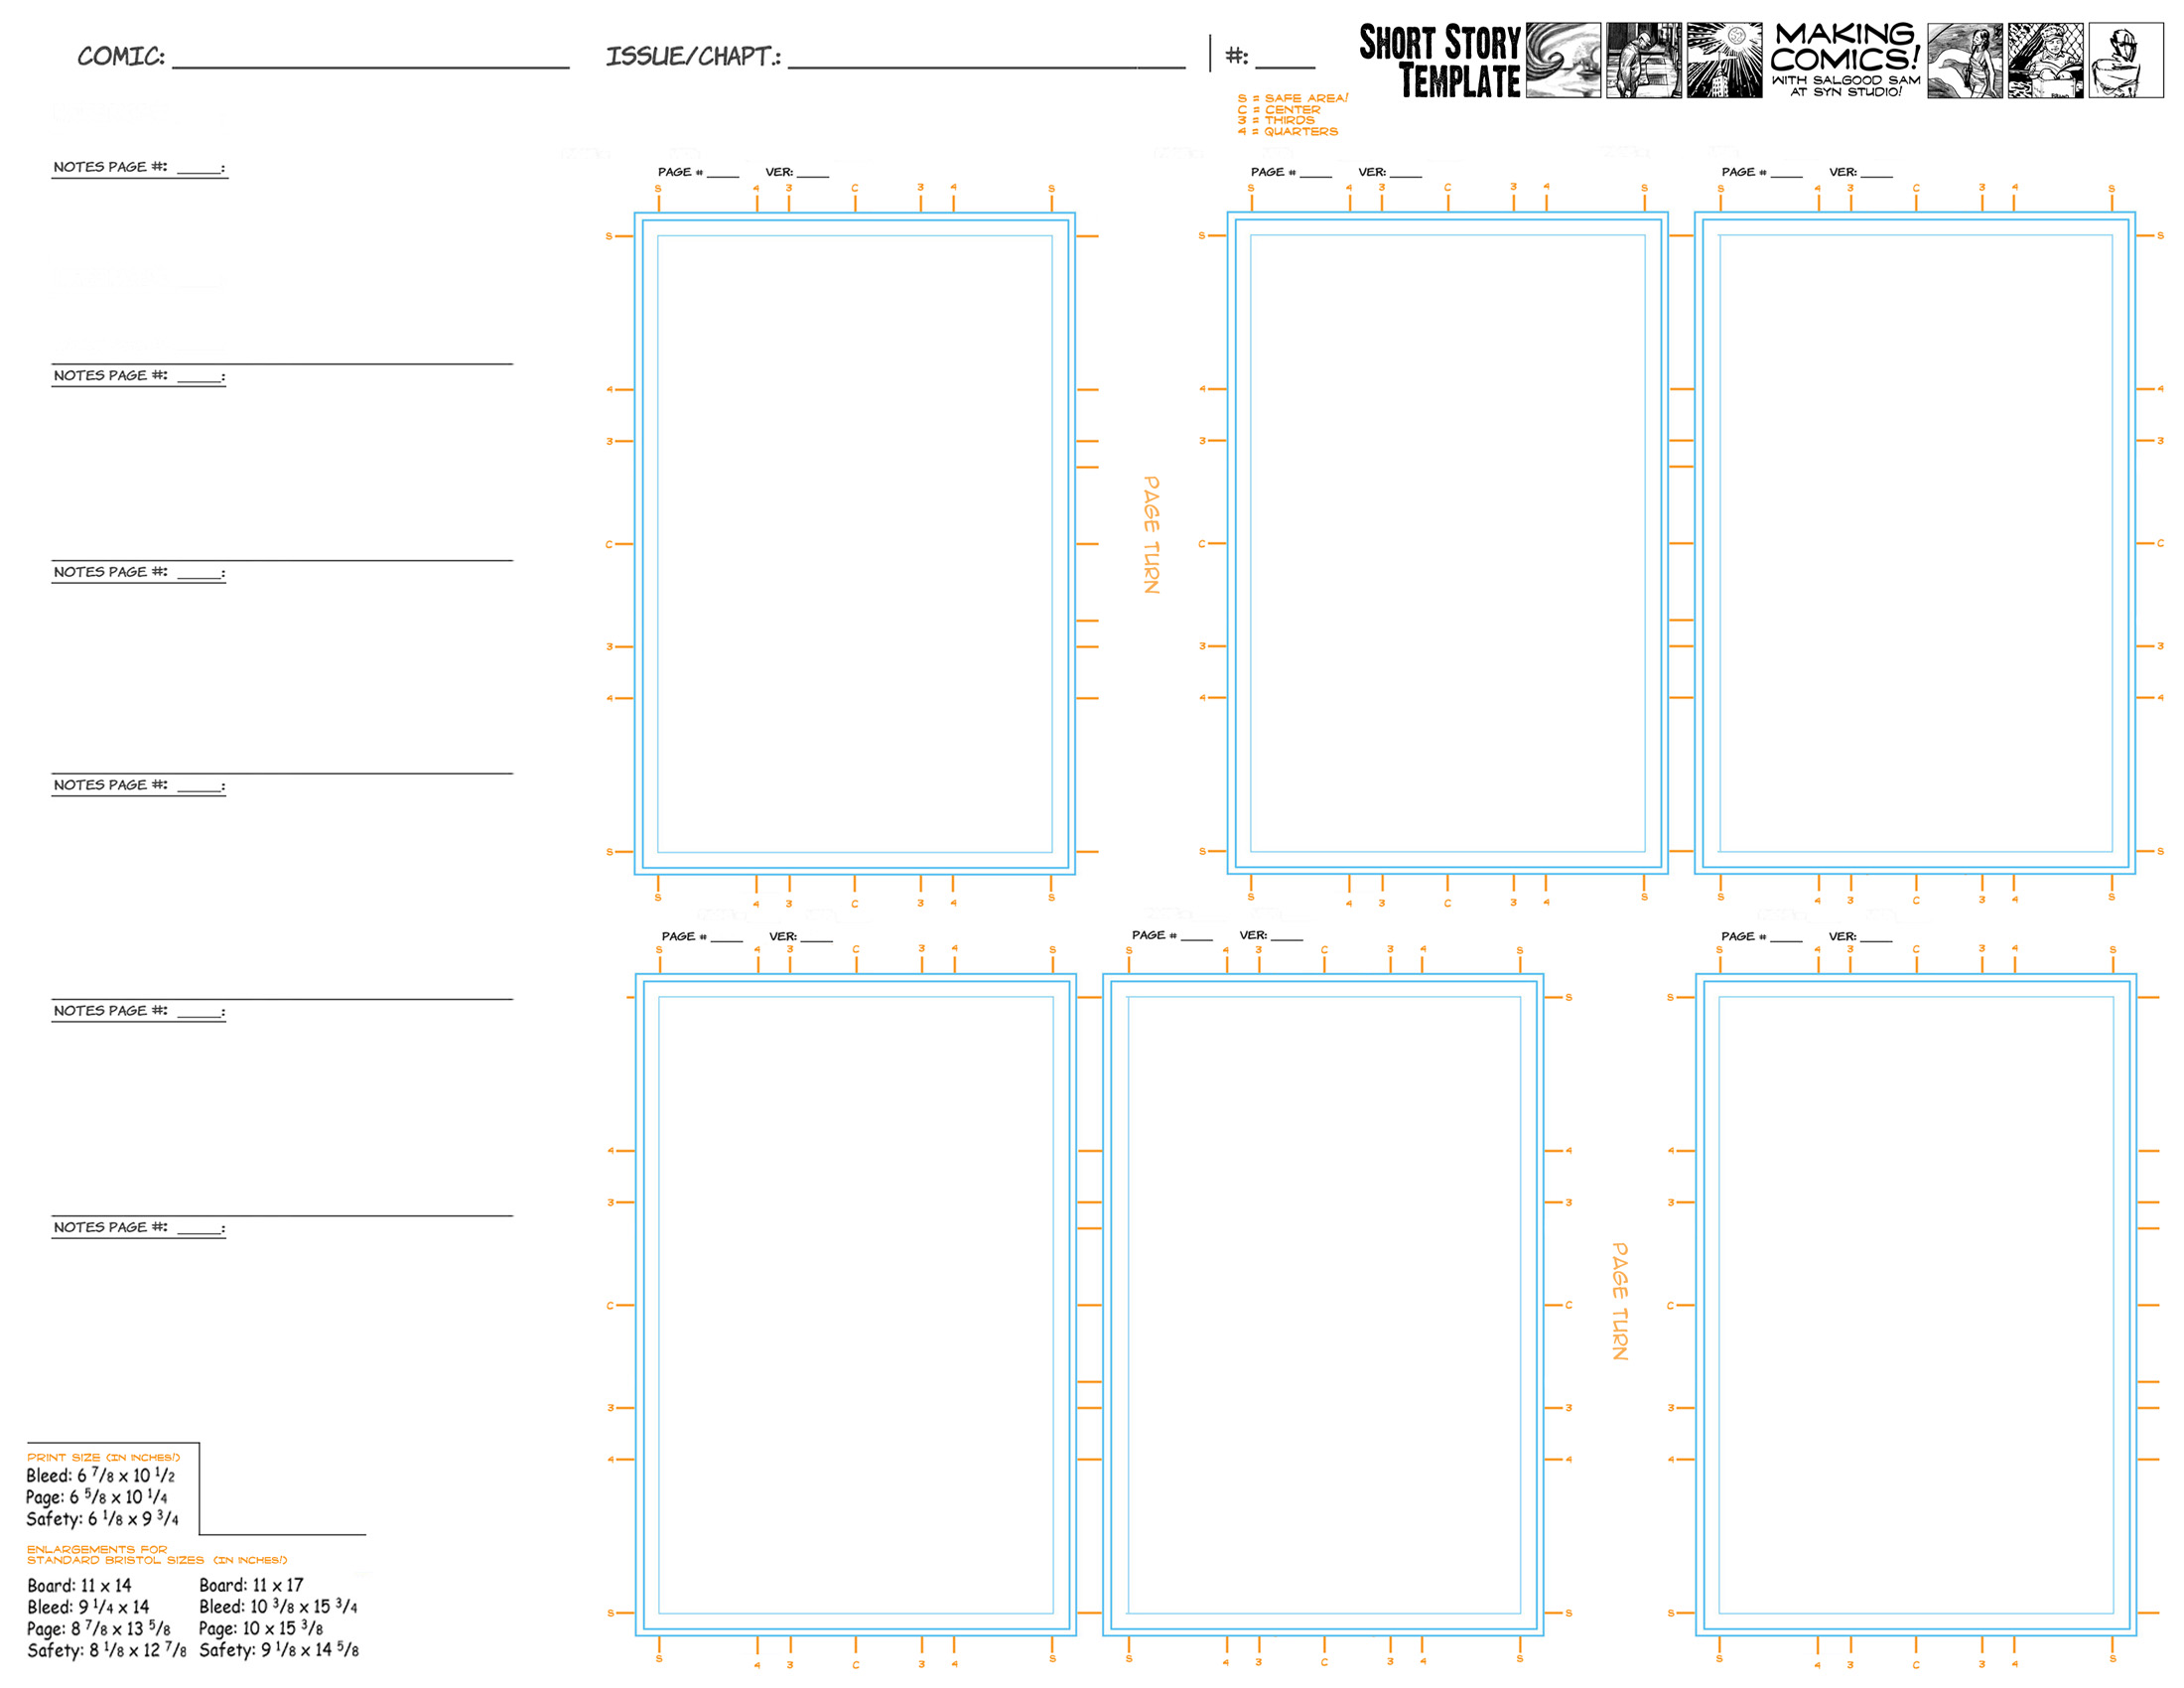 Page aspect ratios templates making comics the template is made to be printed on a 85x11 sheet in landscape mode but if you want more room print it out on a larger sheet the file is saved at 200 malvernweather Gallery